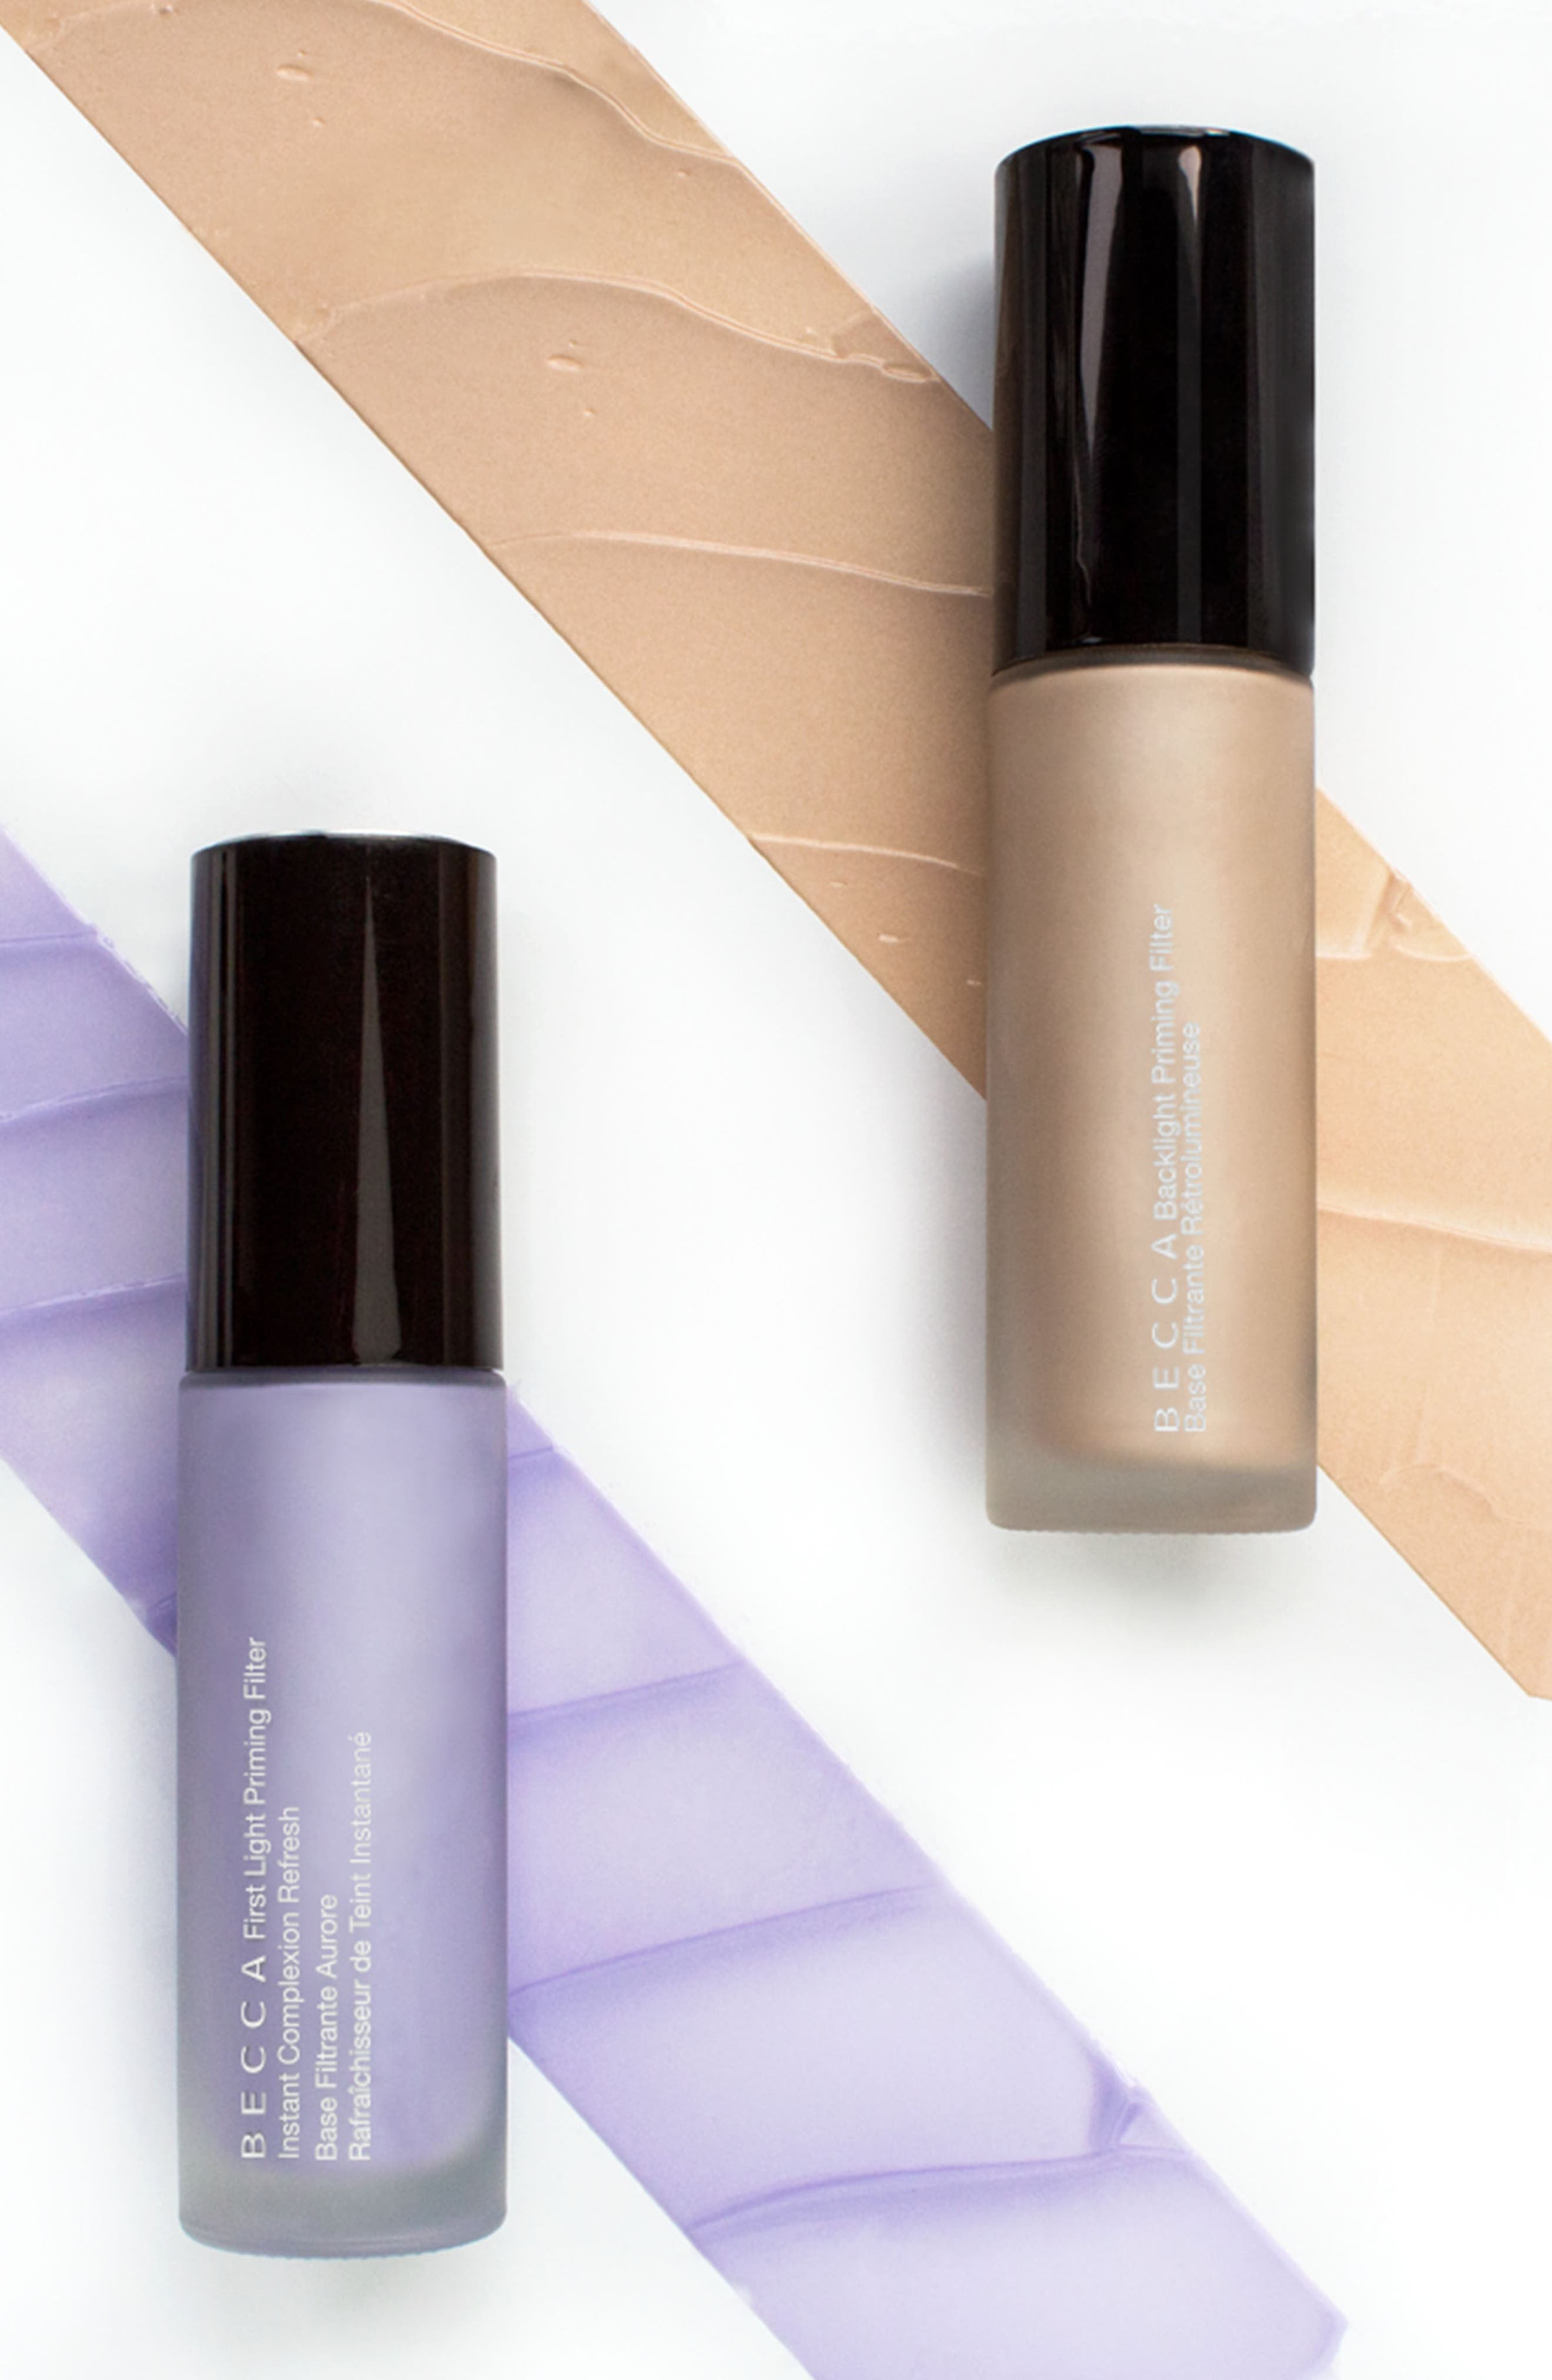 BECCA First Light Priming Filter Instant Complexion Refresh,                             Alternate thumbnail 8, color,                             NO COLOR